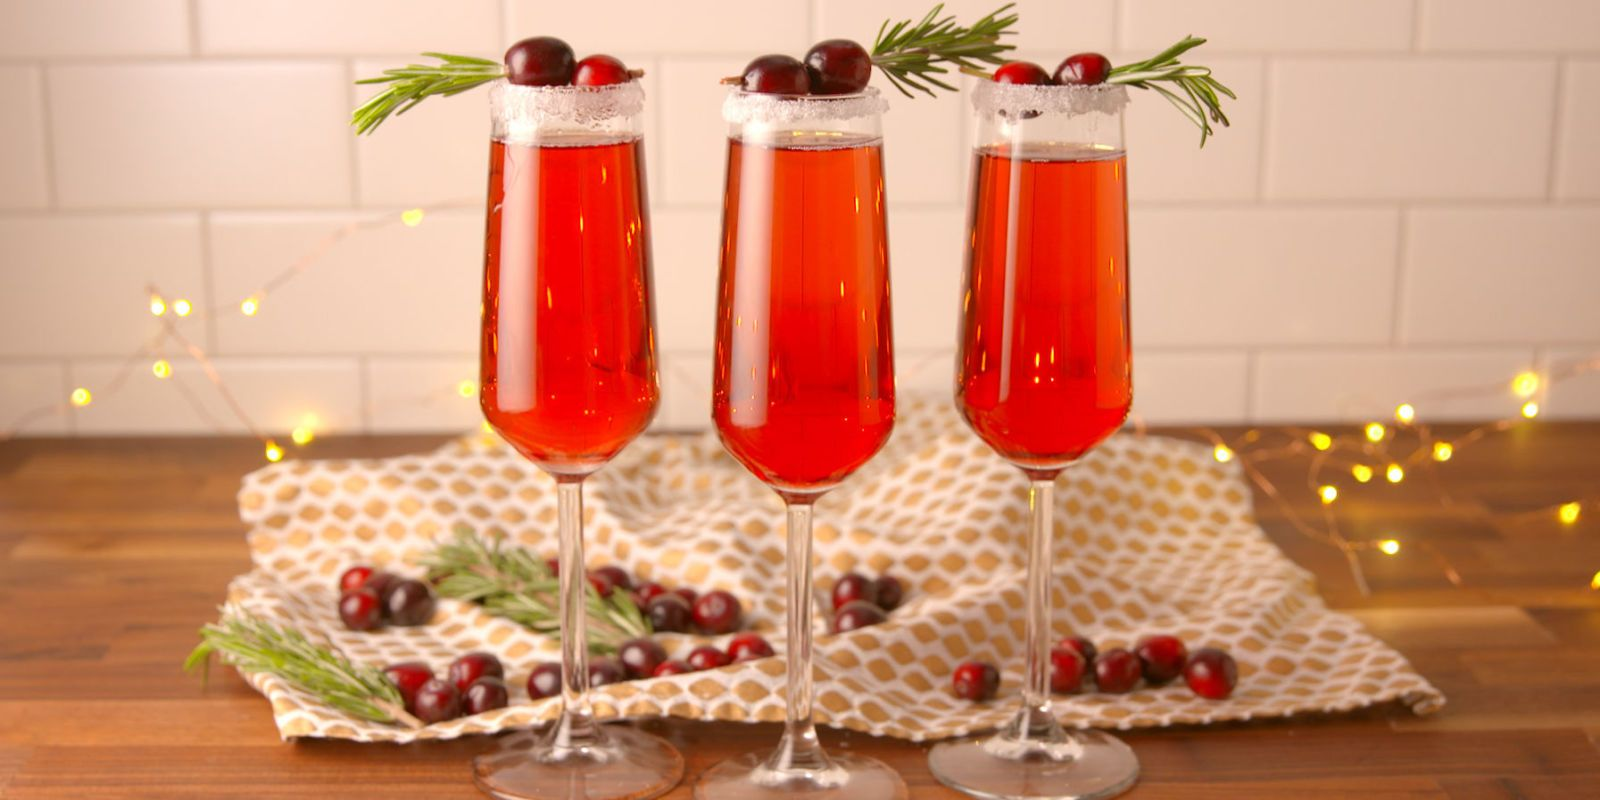 36 Festive Thanksgiving Cocktails To Liven Up The Table